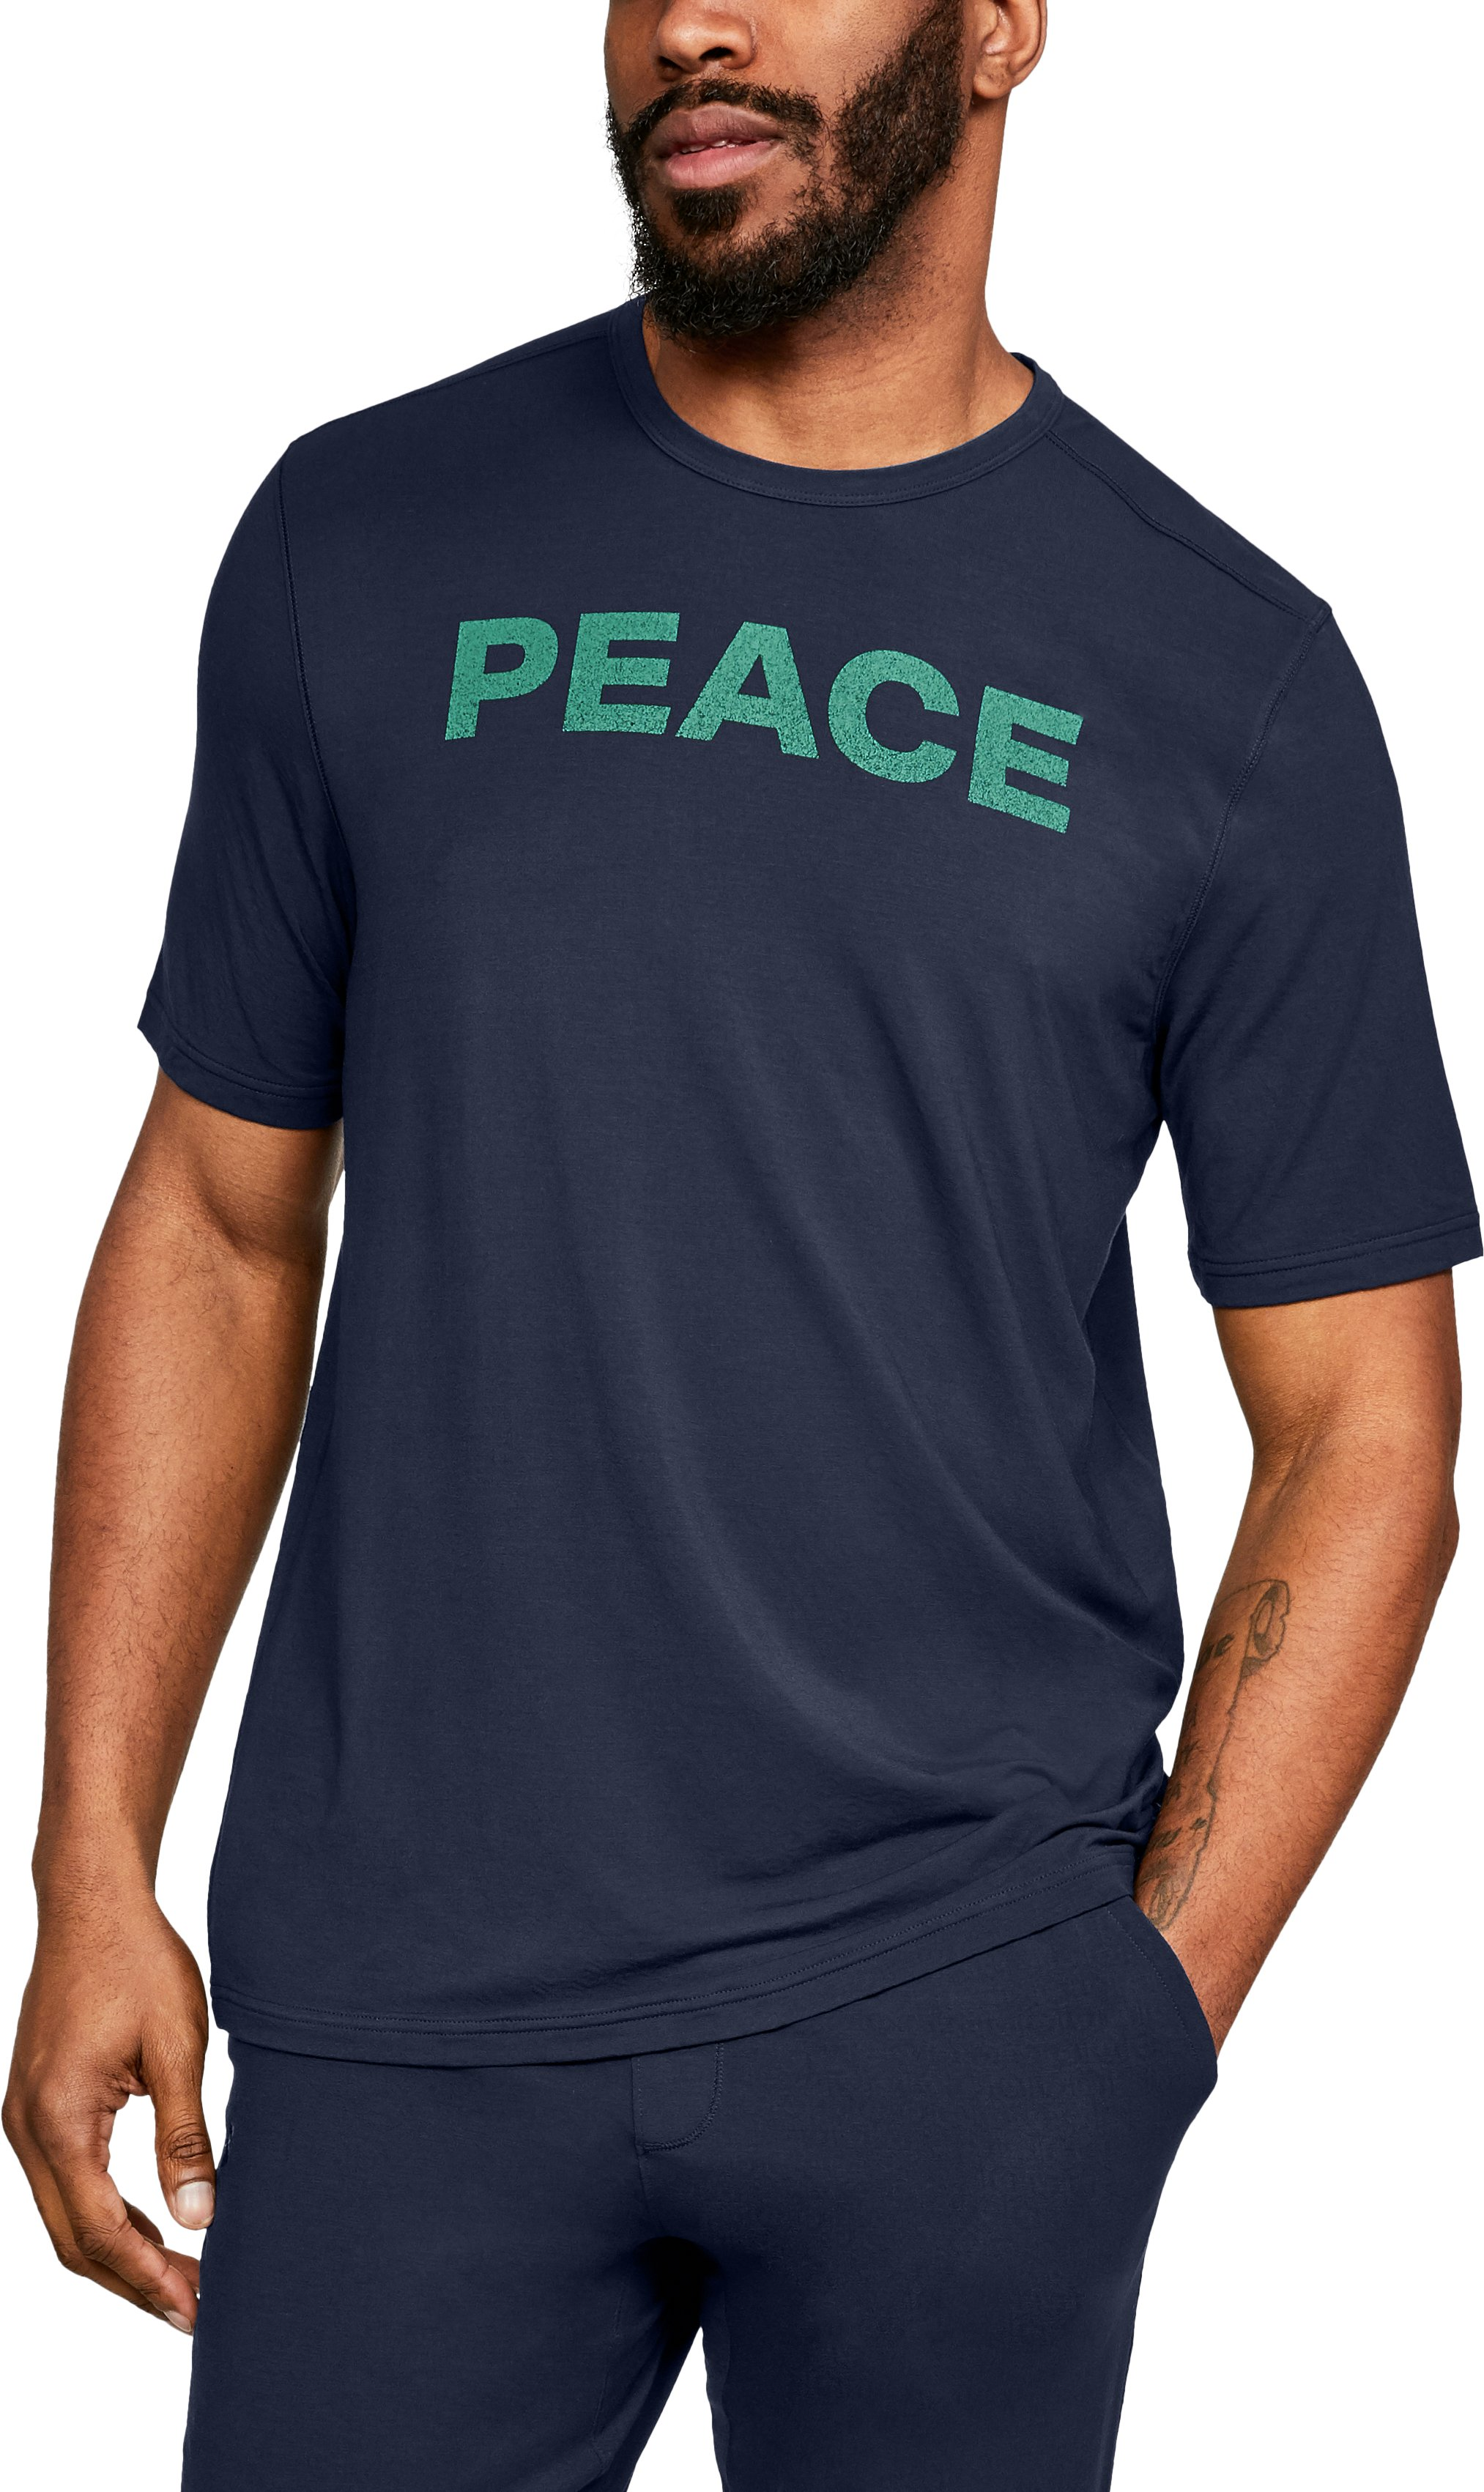 Men's Athlete Recovery Ultra Comfort Sleepwear PEACE Graphic T-Shirt, Midnight Navy